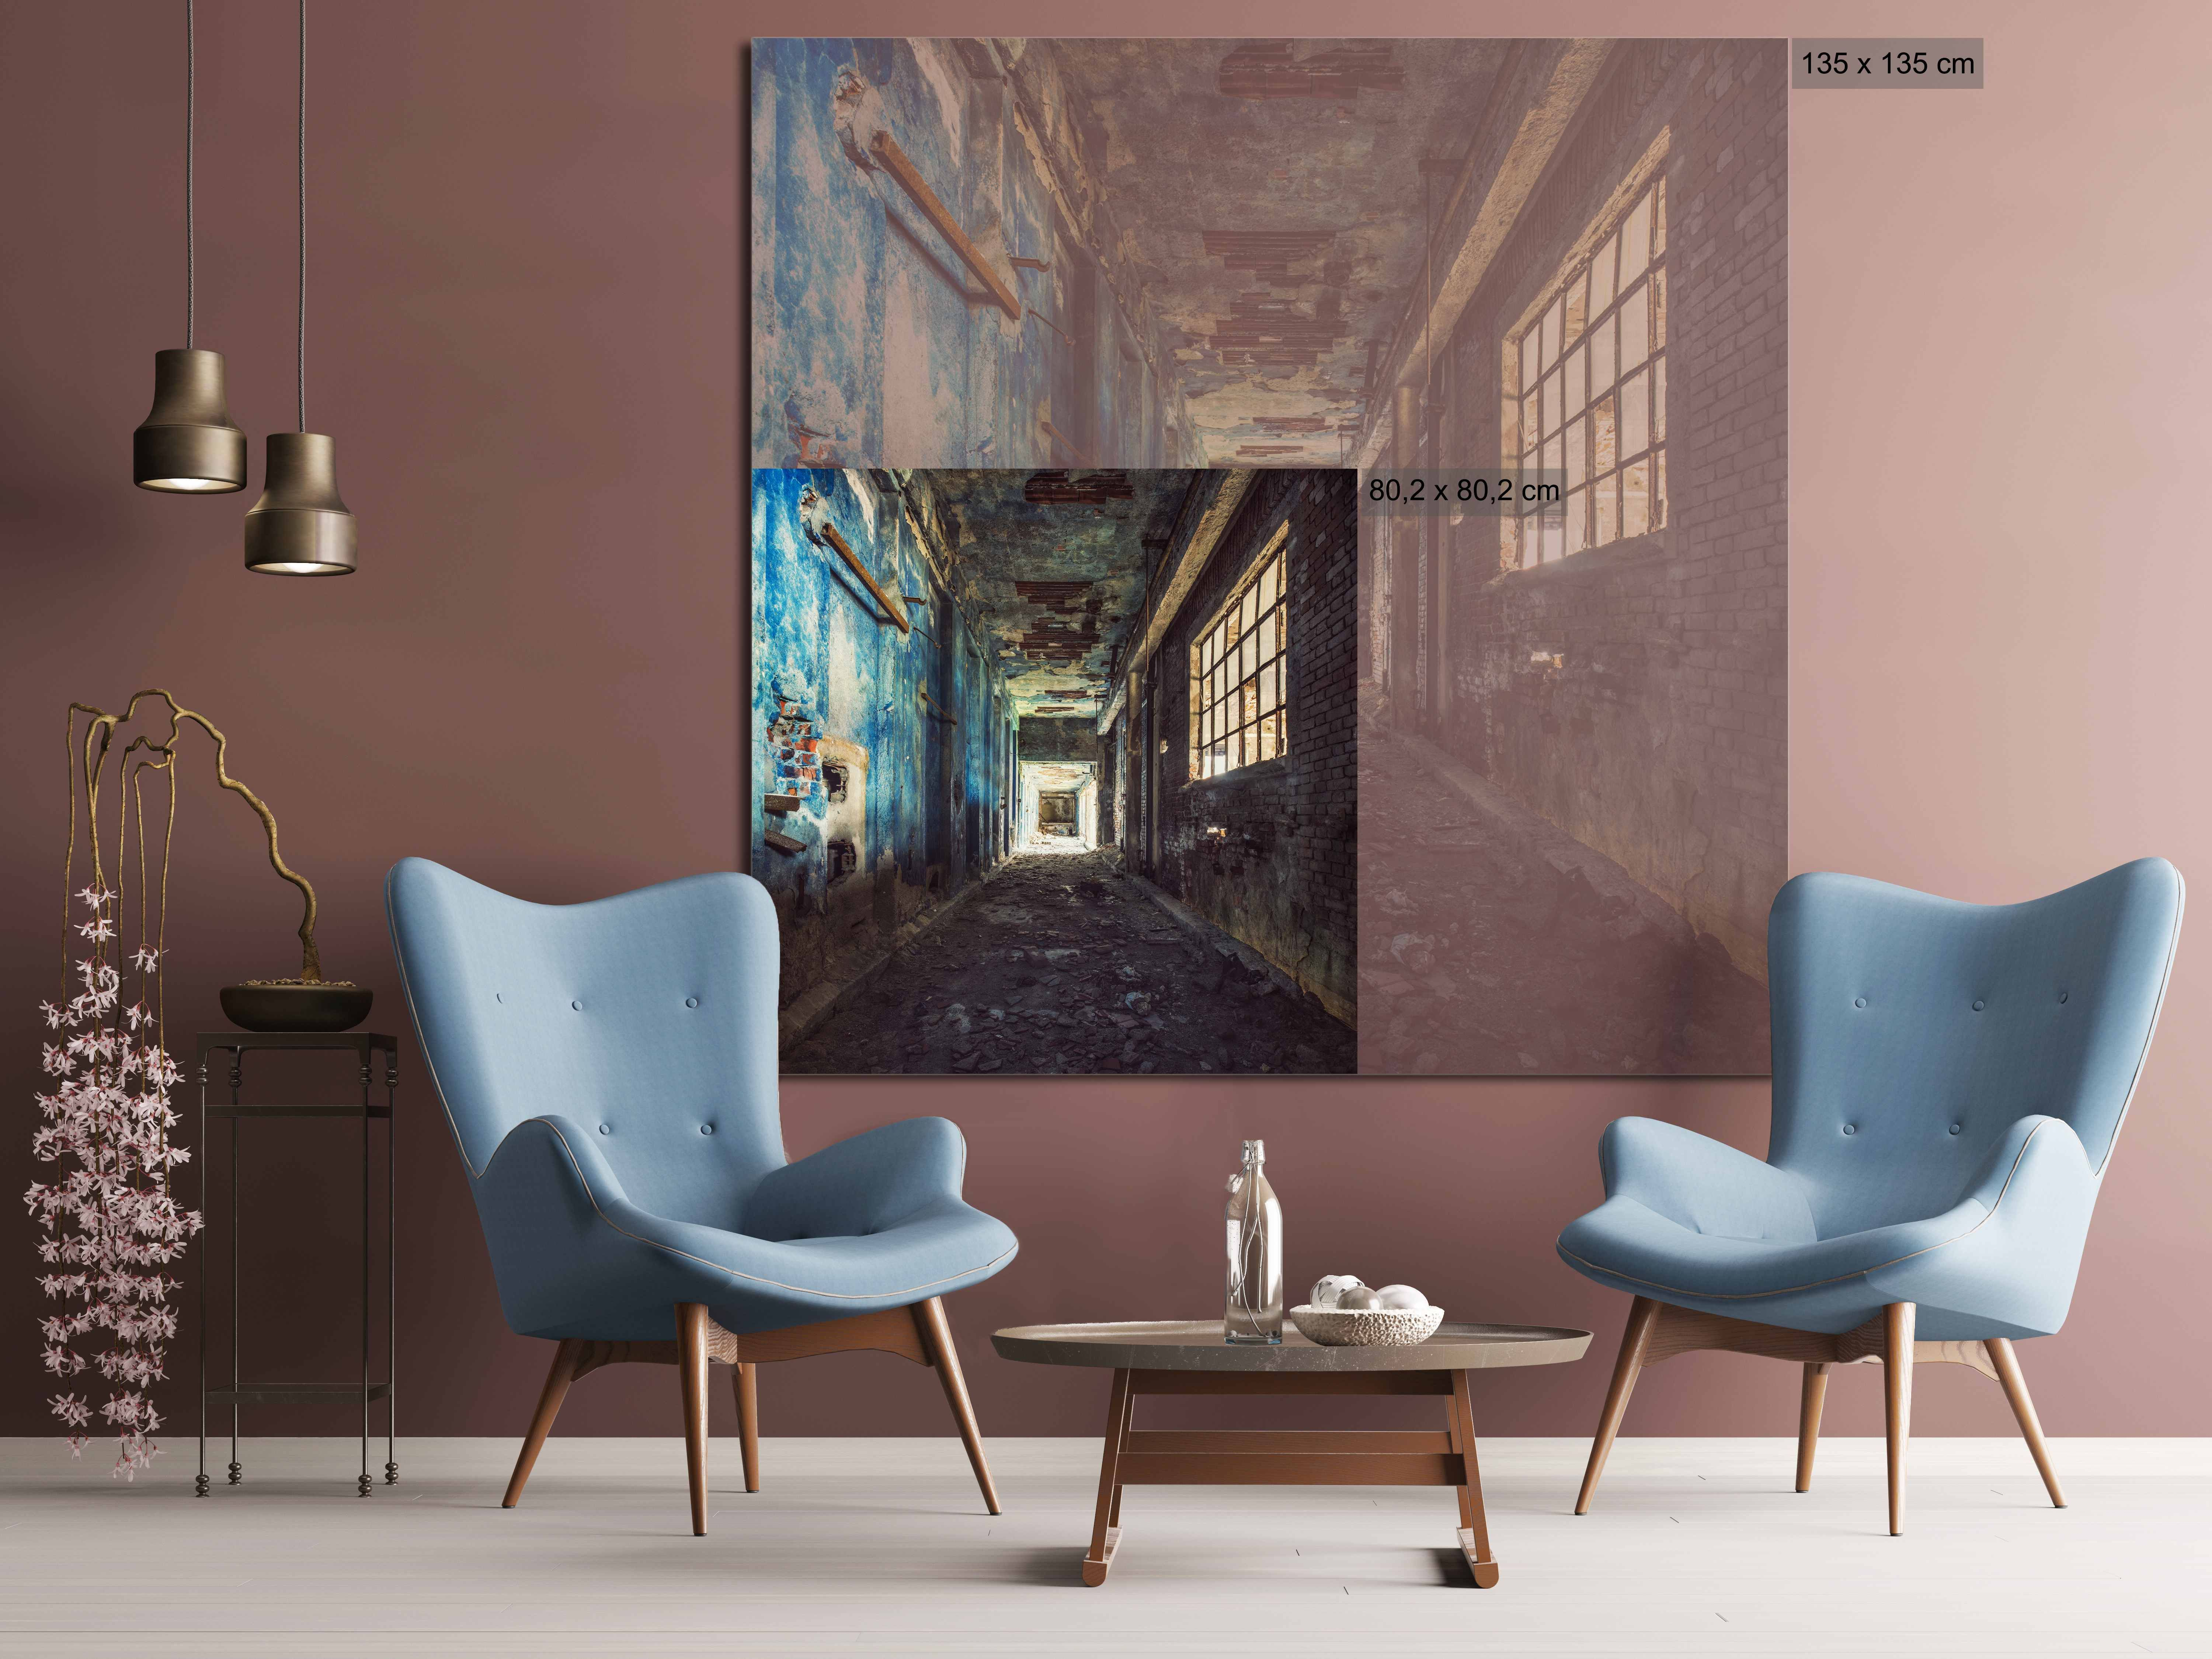 Factory Walkway - Gina Soden - Photographie contemporaine - detail 1